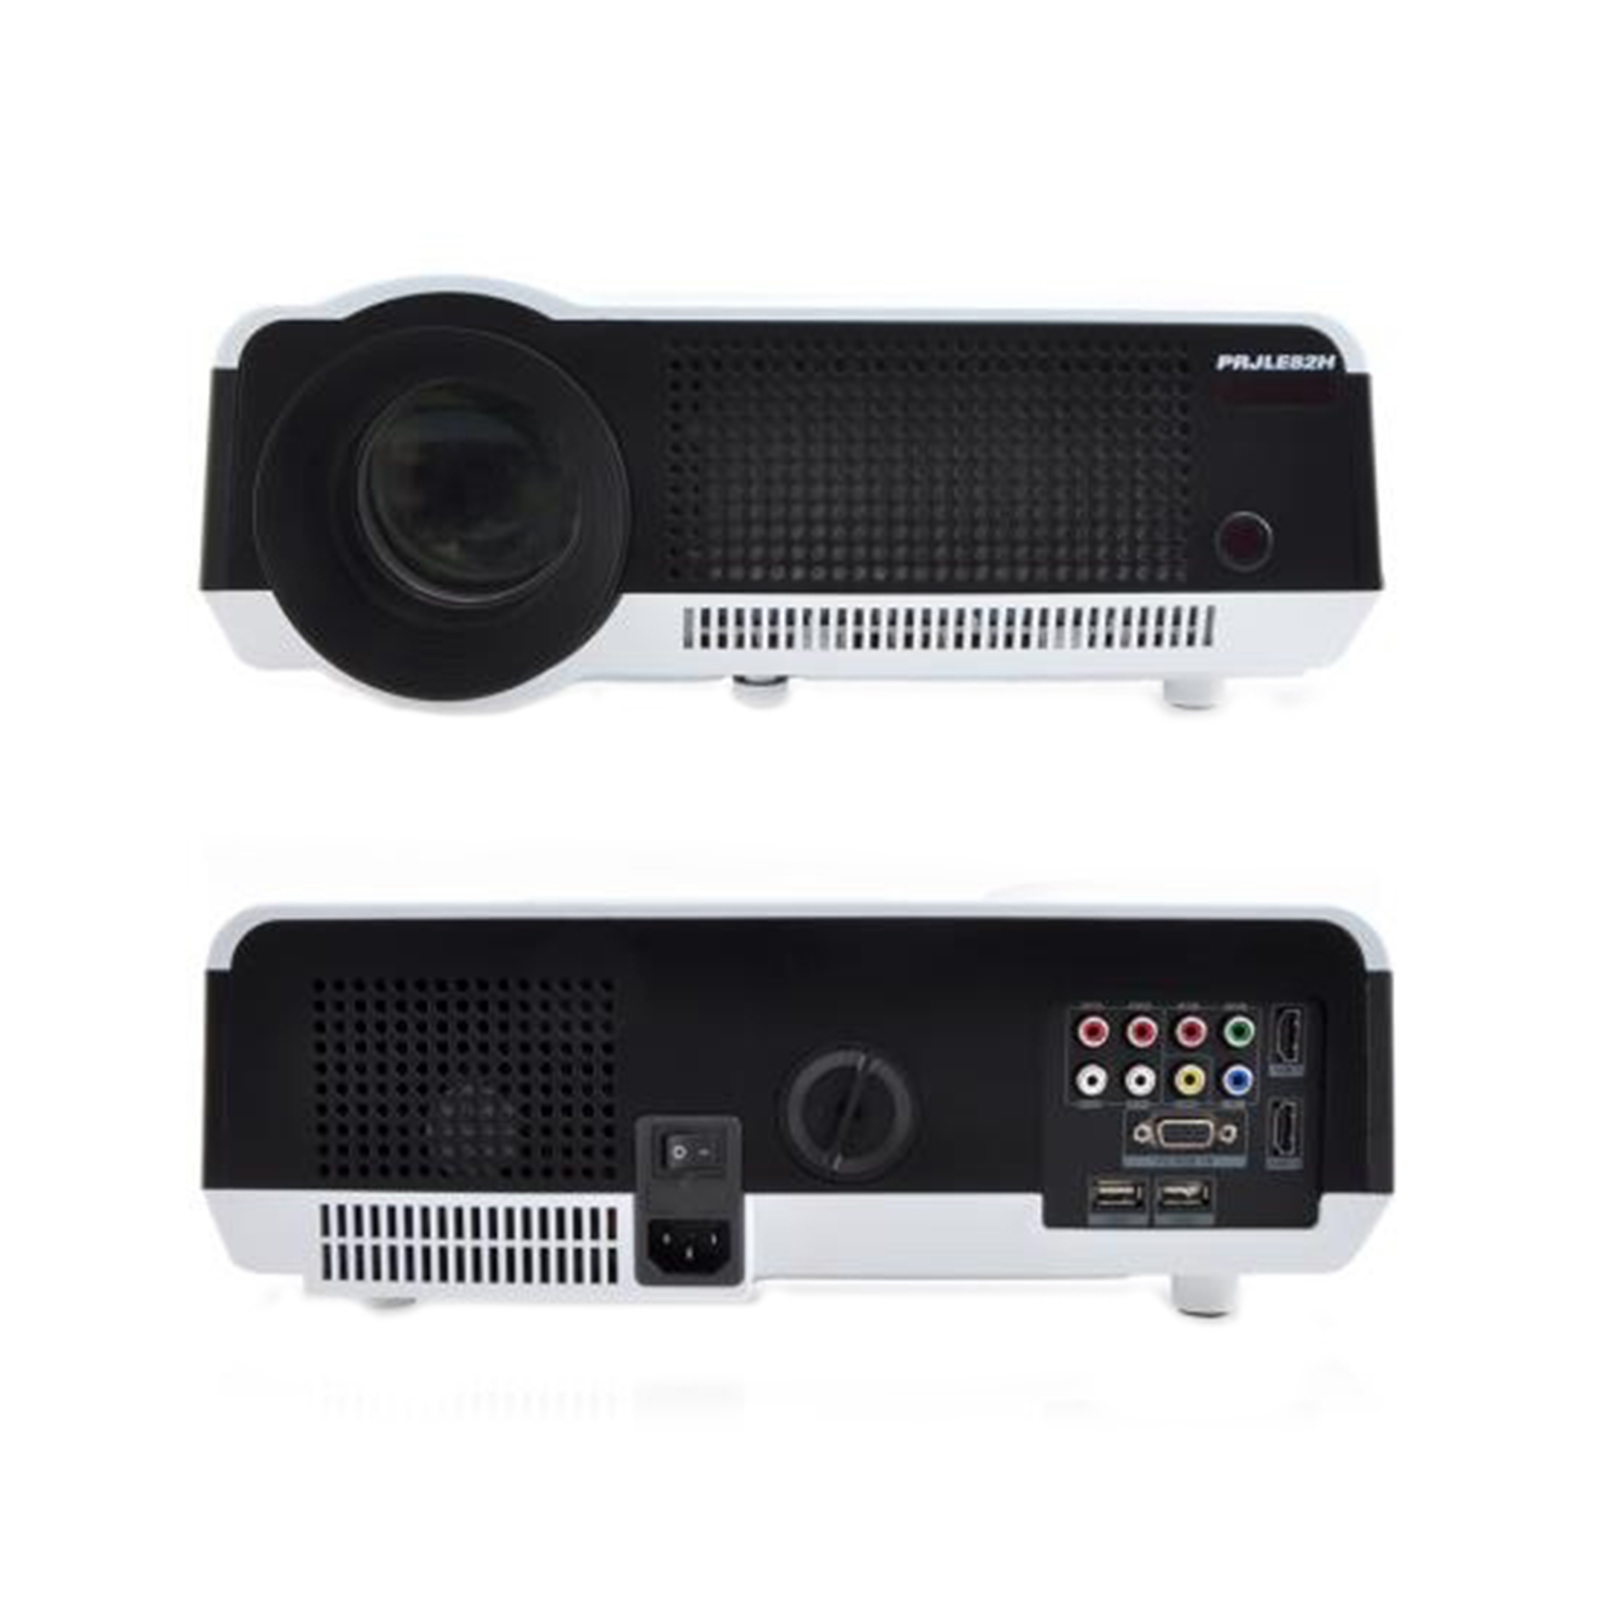 Video Projector with HD 1080p Support, Built-In Speakers (HDMI/USB/VGA/YPbPr/RCA)